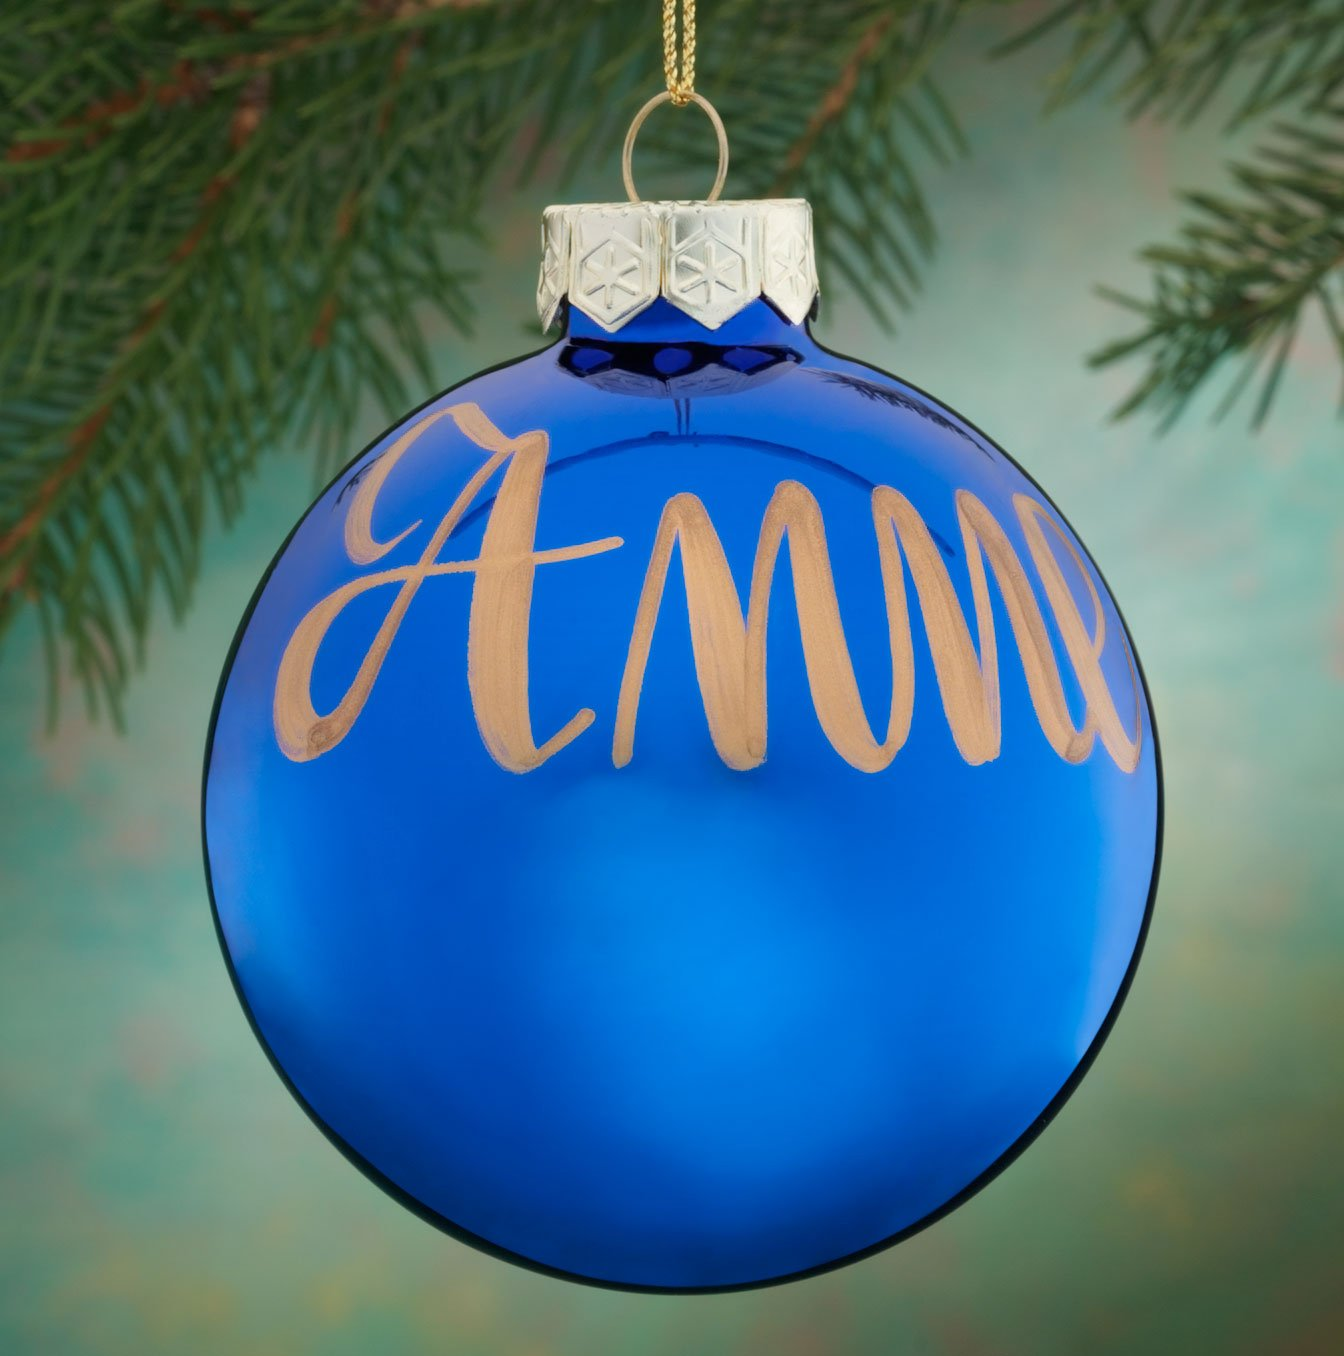 Miles Kimball Personalized Name OR Date Painted Blue Ornament